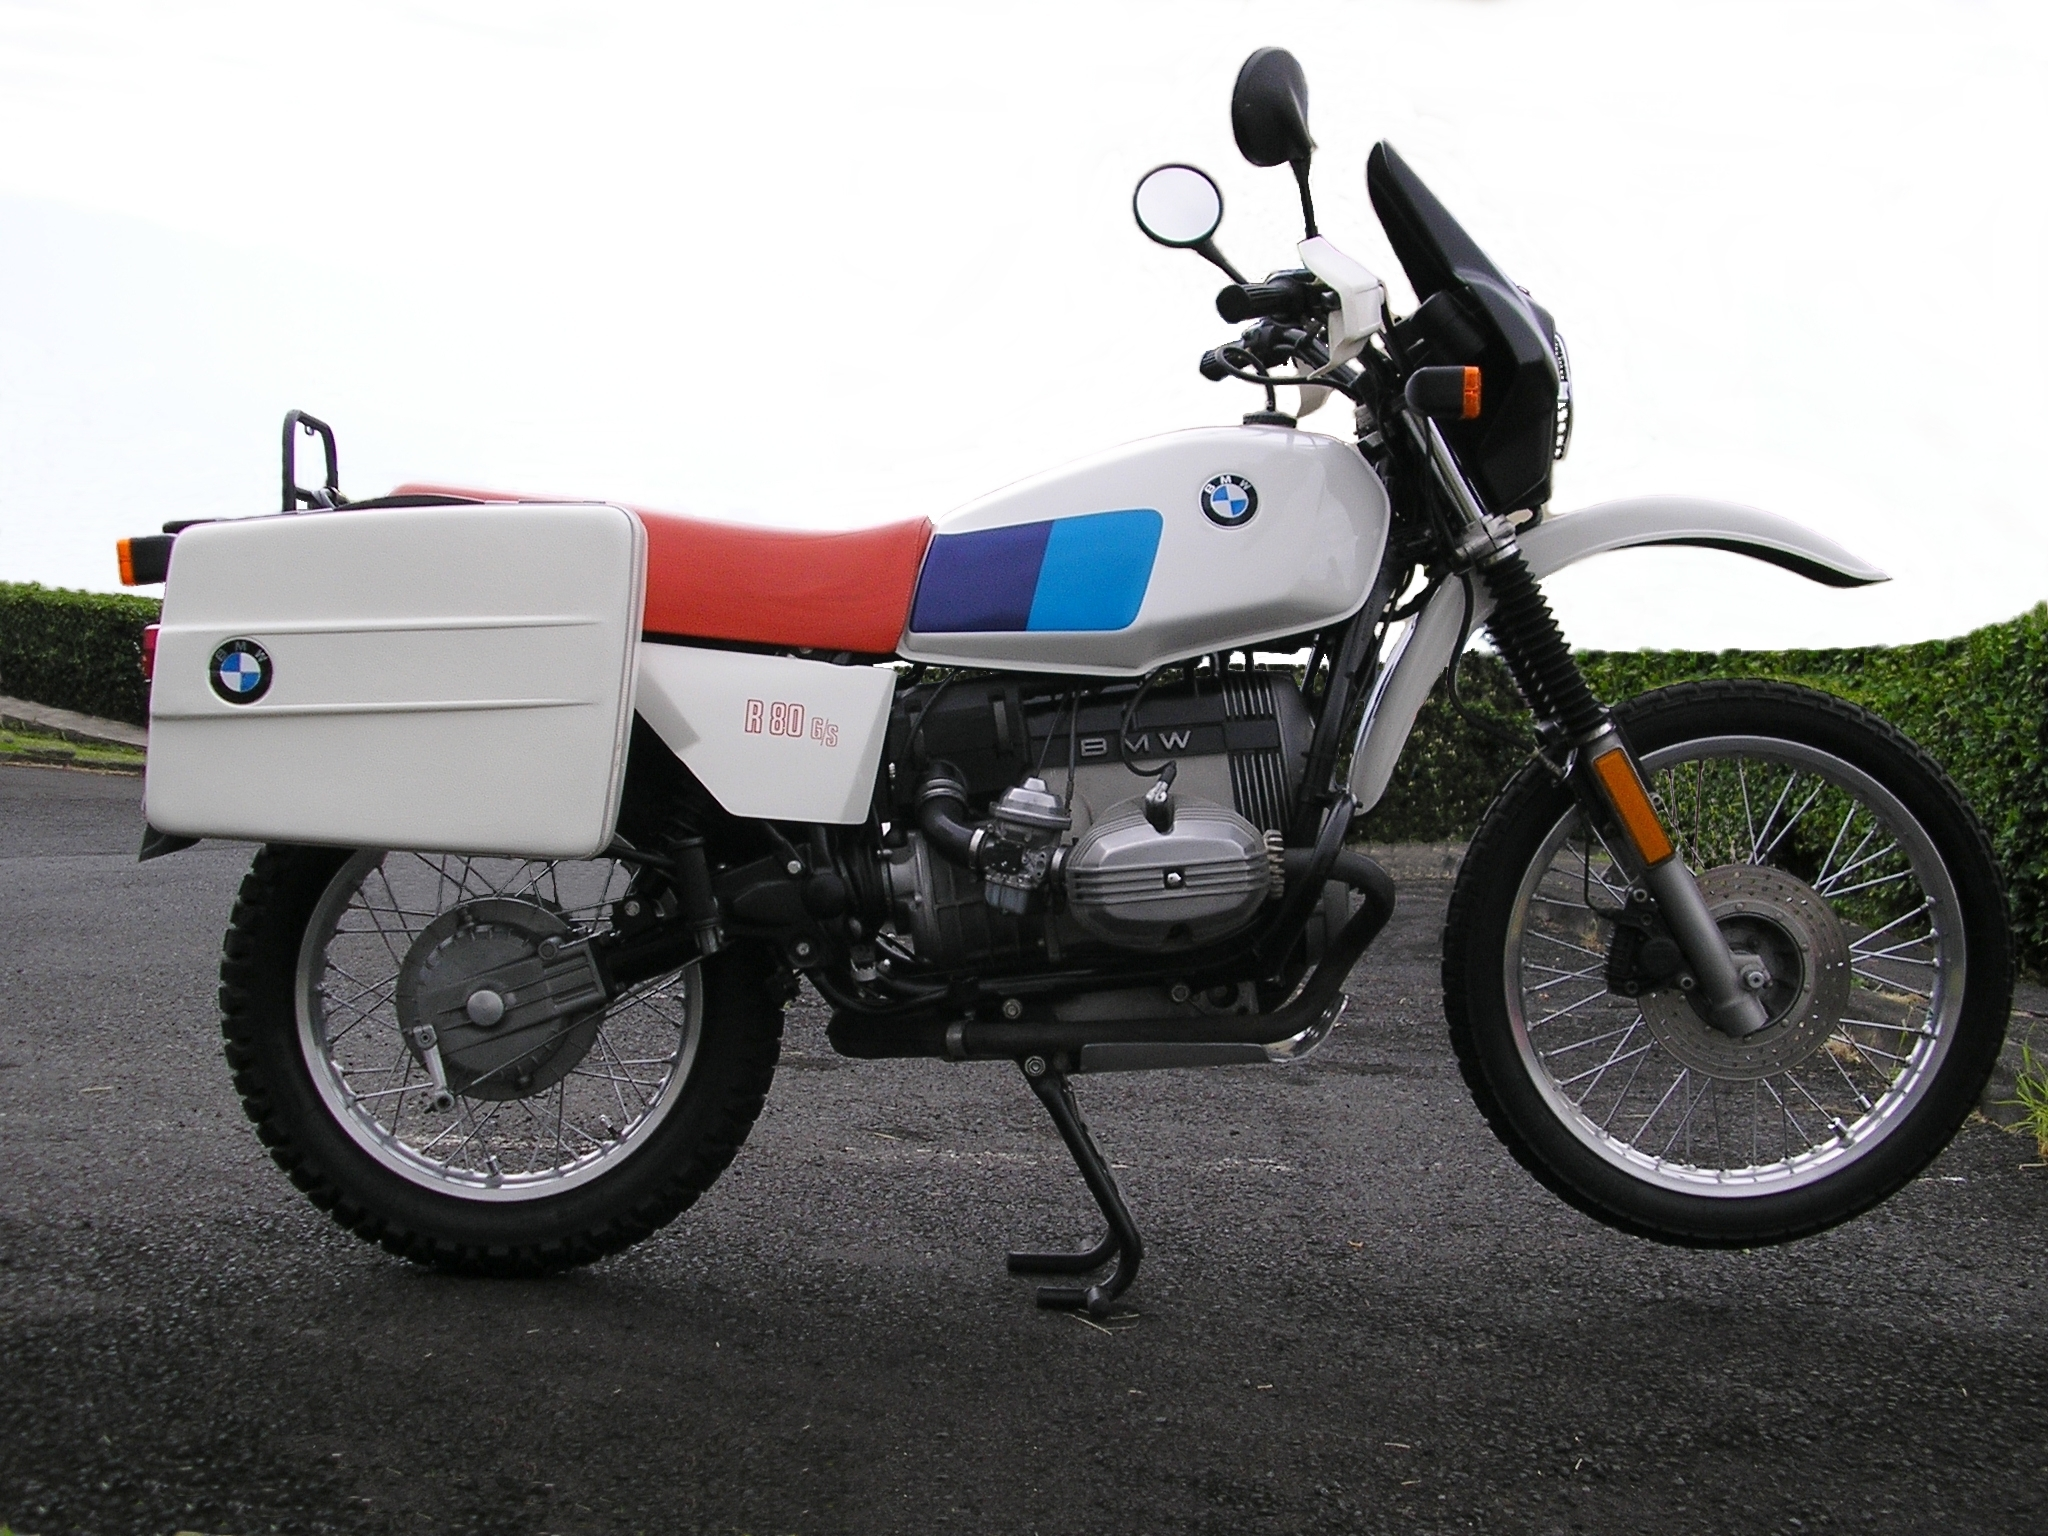 BMW R100GS Paris-Dakar images #77487